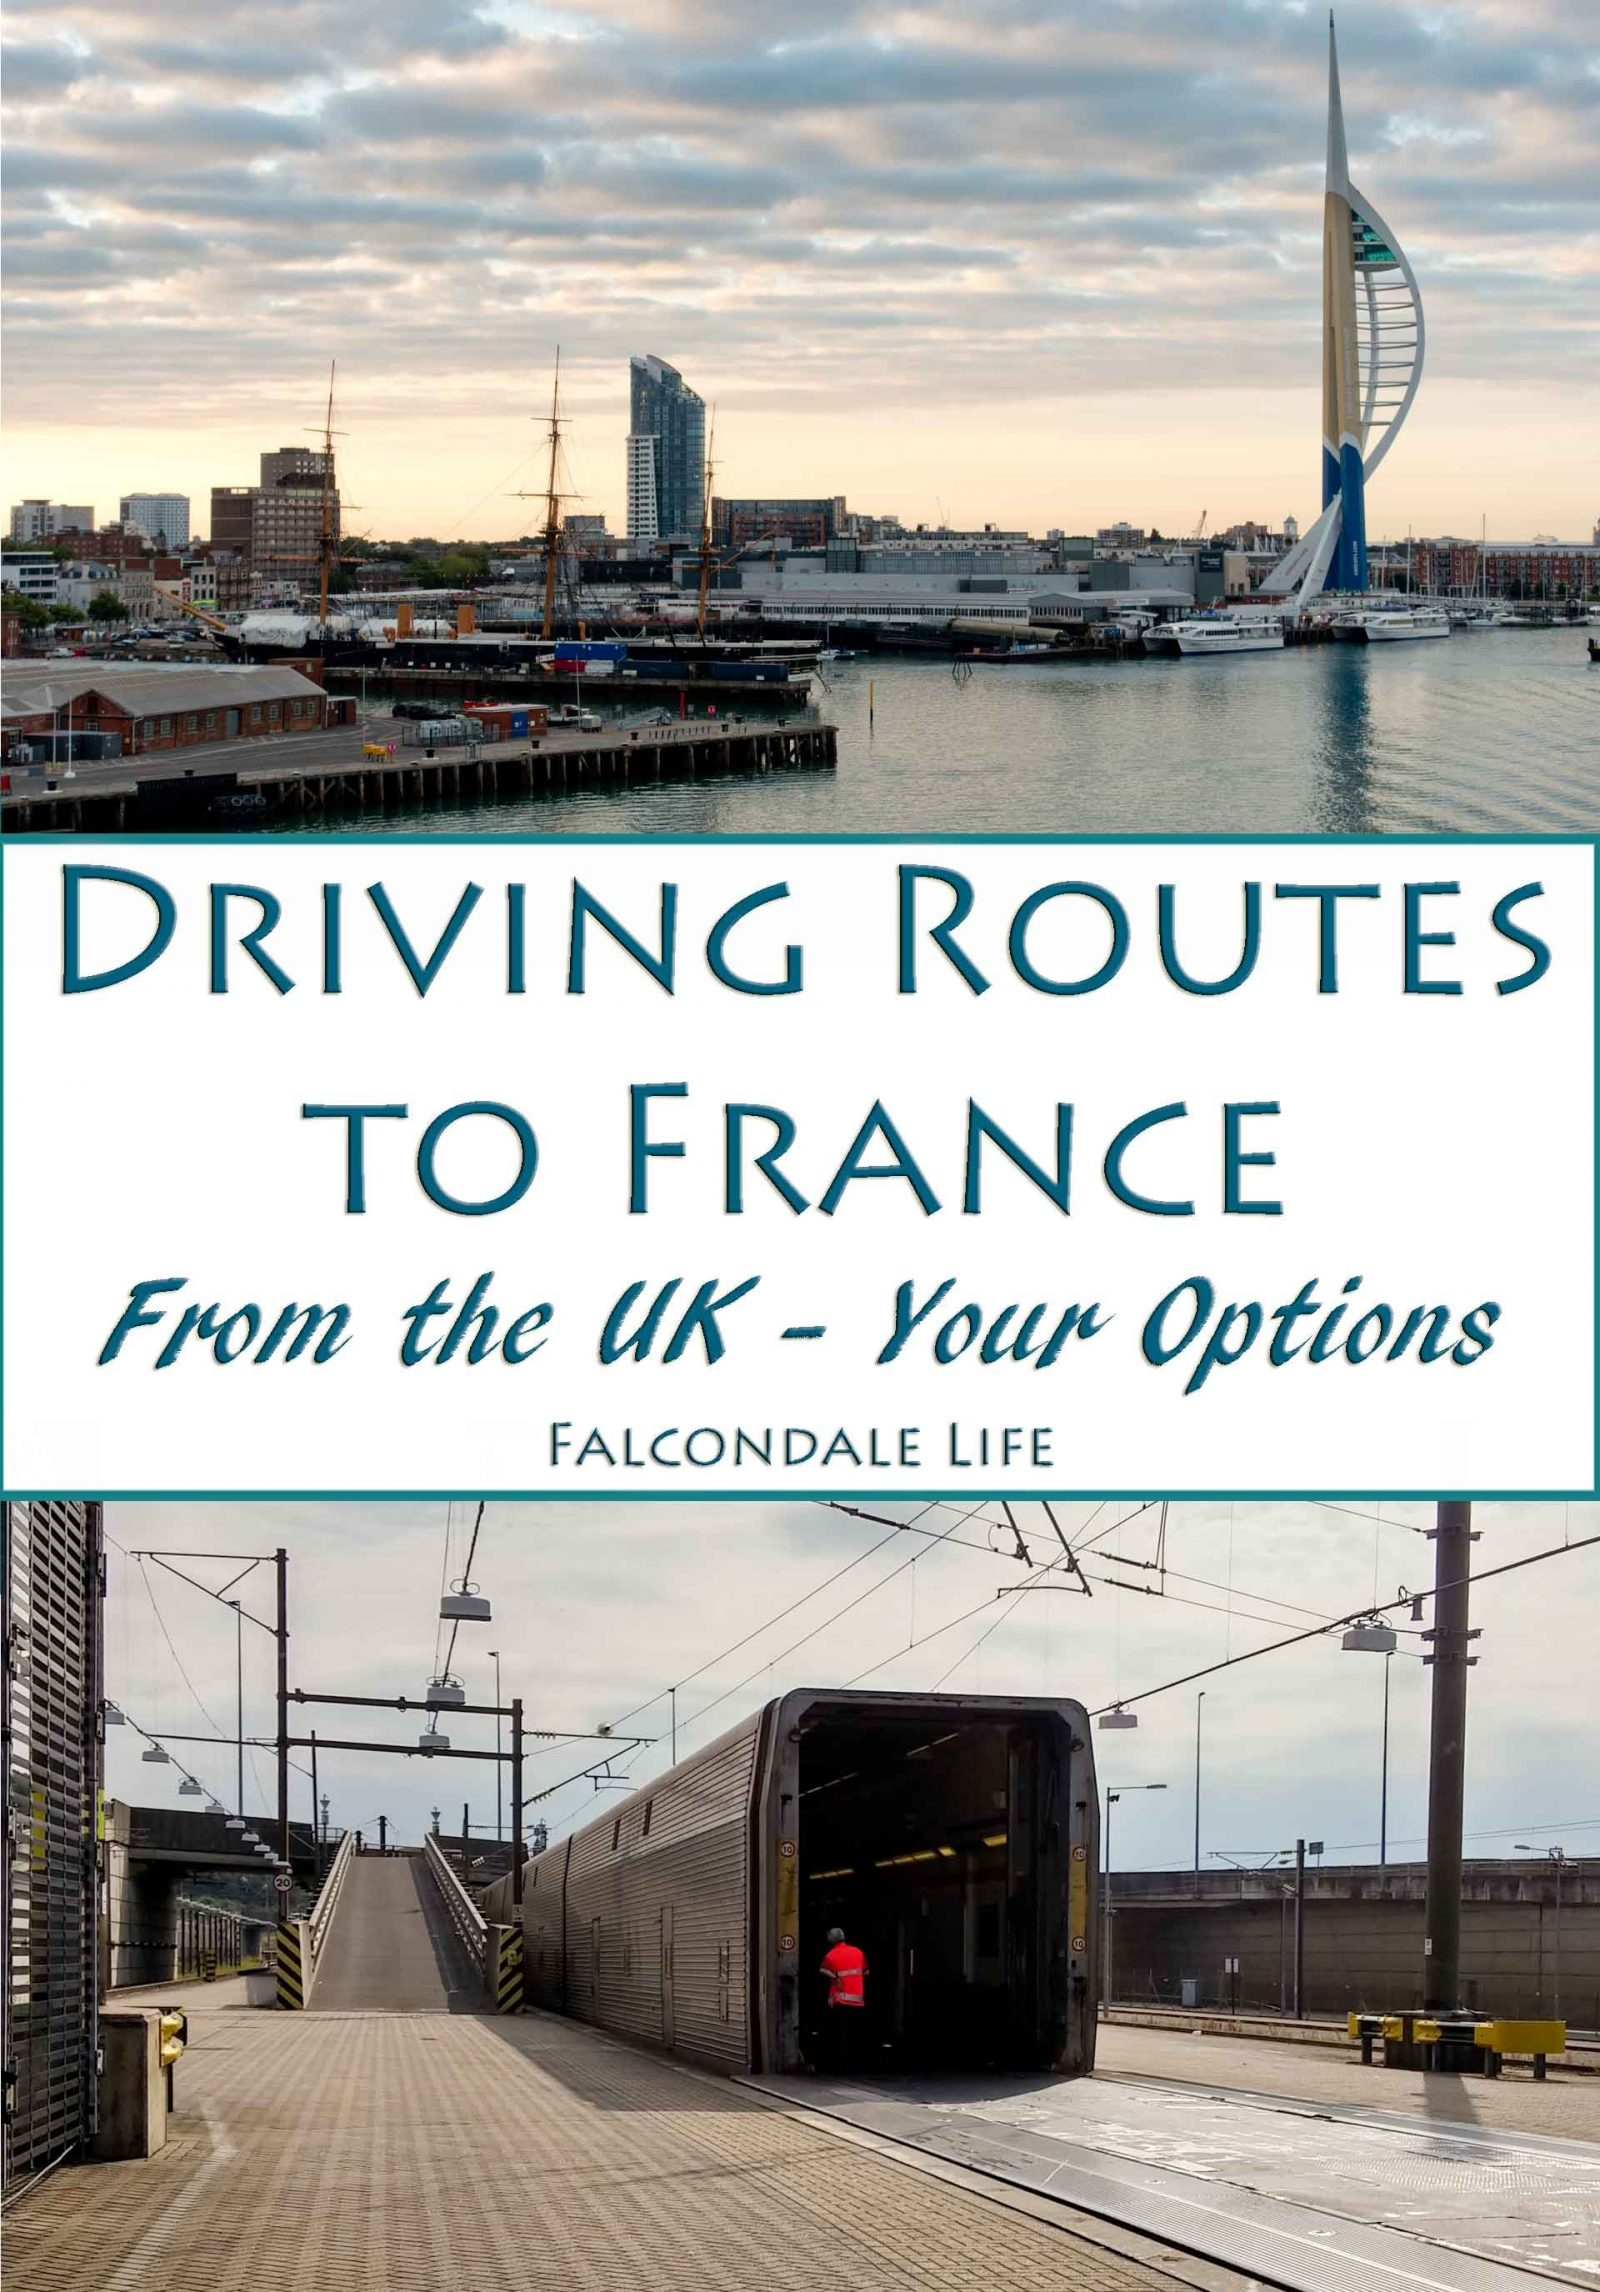 Driving routes to France from the UK - Your options on Falcondale Life Blog. Portsmouth historic harbour at dawn and the Eurotunnel train. Tips and ideas to think about the timing, cost and effort of each route to France.